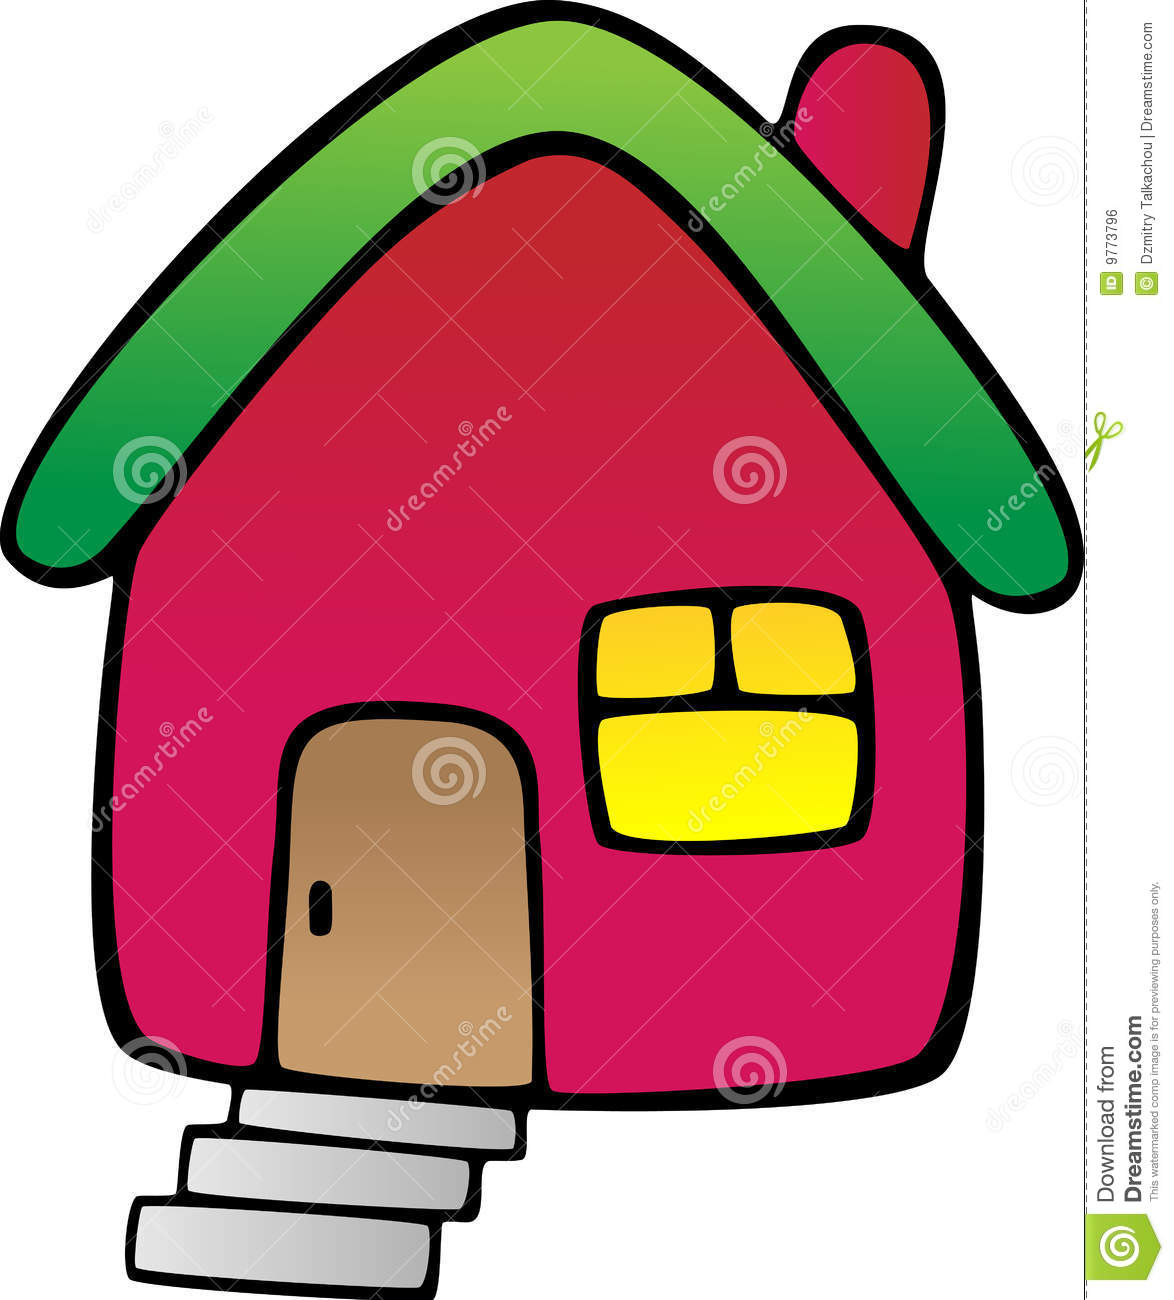 Rotes haus clipart vector free download Rotes Haus Lizenzfreies Stockbild - Bild: 9773796 vector free download